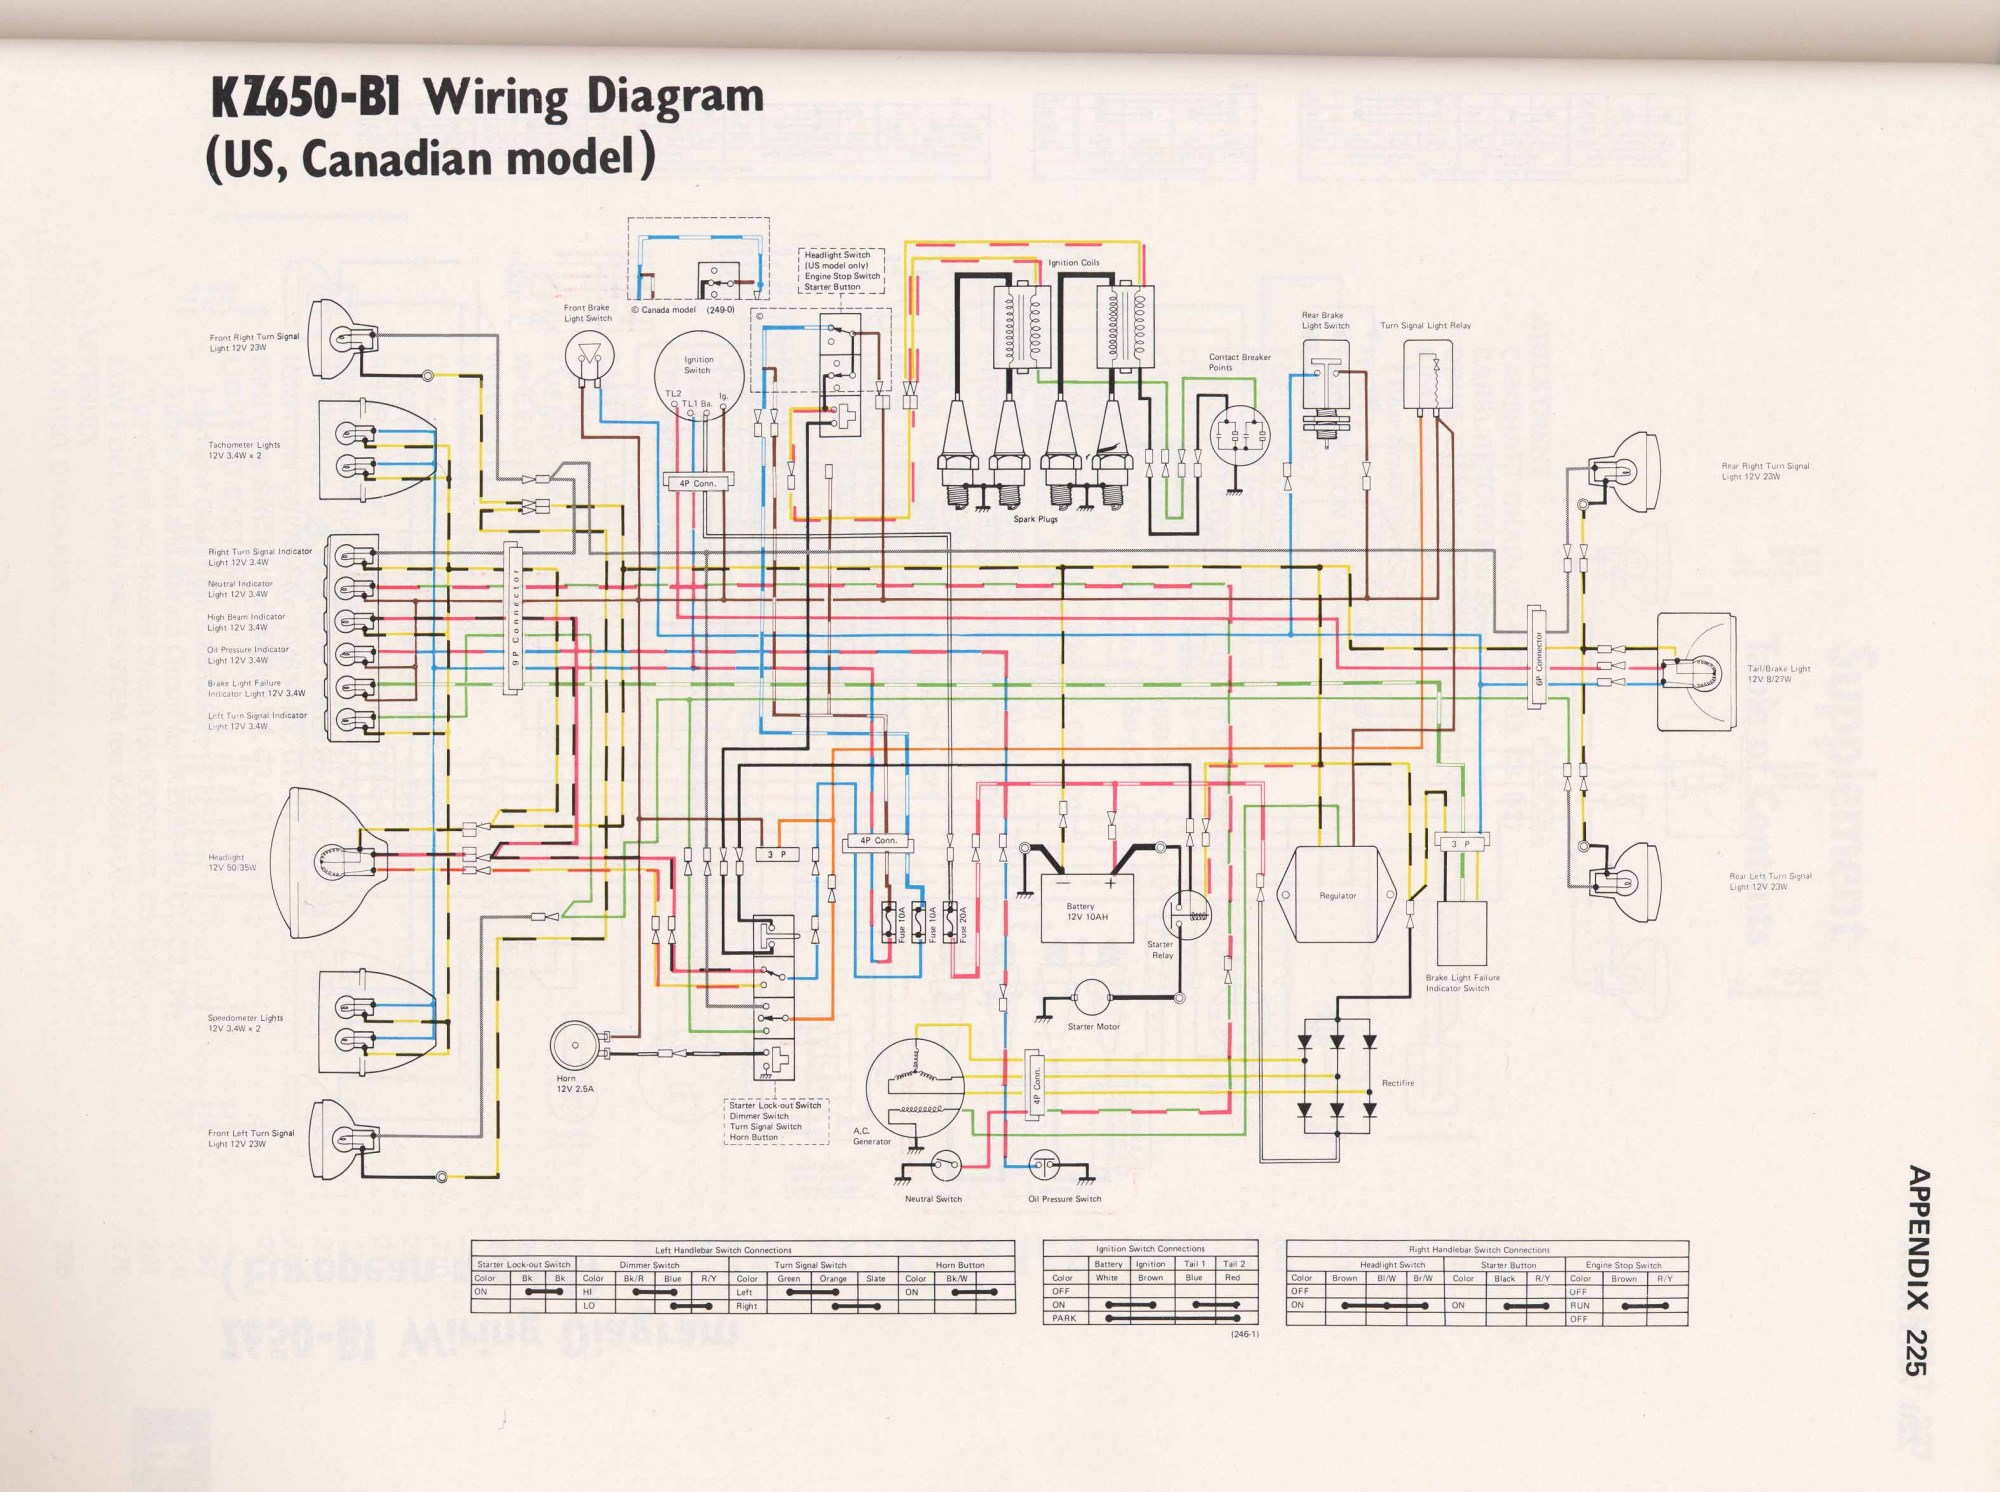 hight resolution of 1977 kawasaki kz650 wiring diagram wiring diagram showkz650 info wiring diagrams 1977 kawasaki kz650 wiring diagram